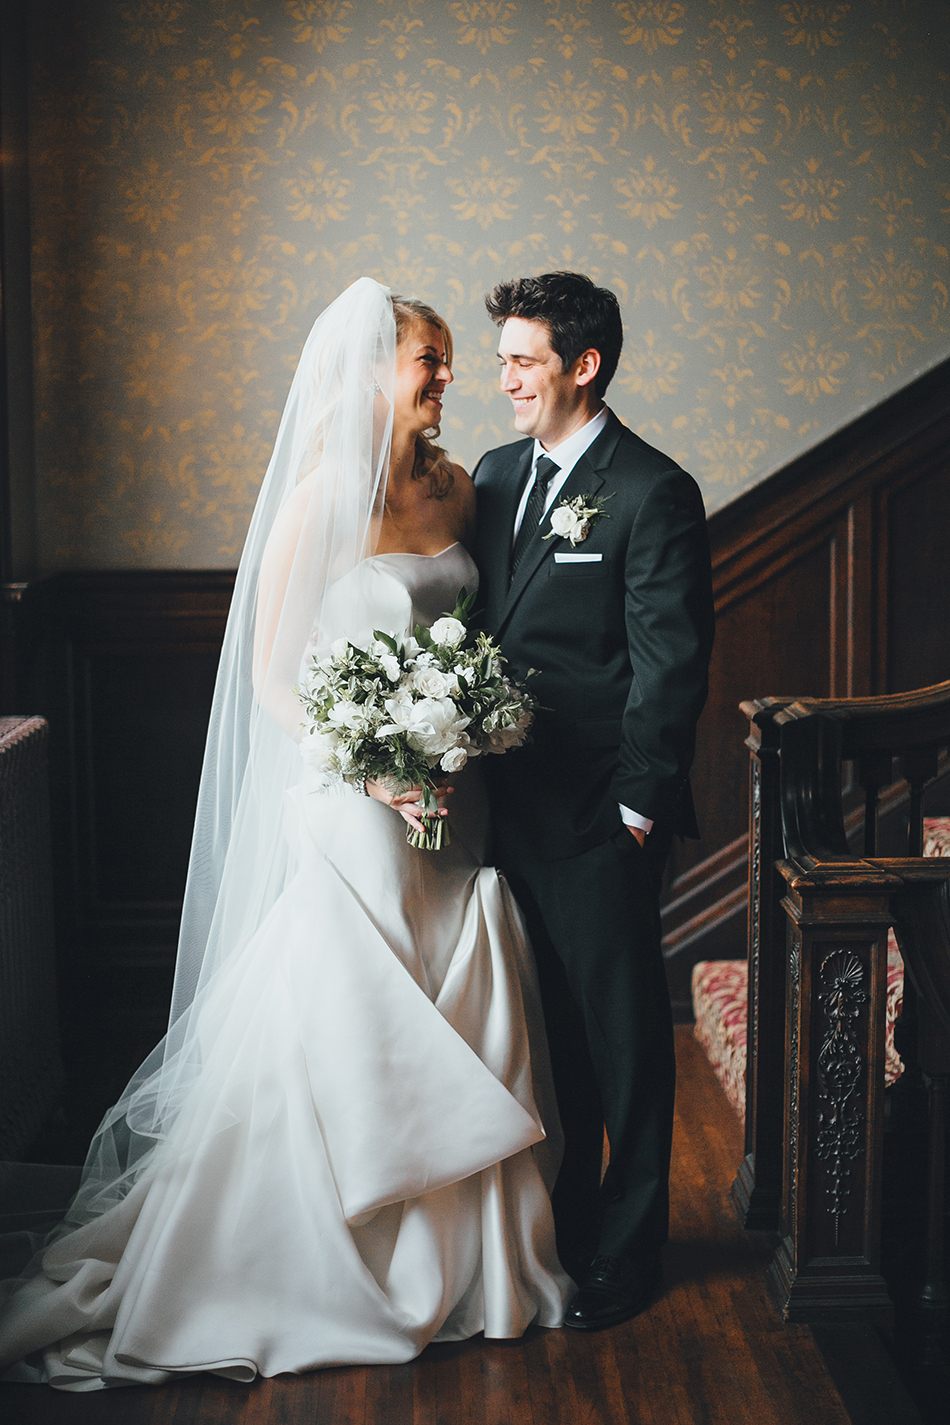 annamaier_realbride_minneapolis11.jpg